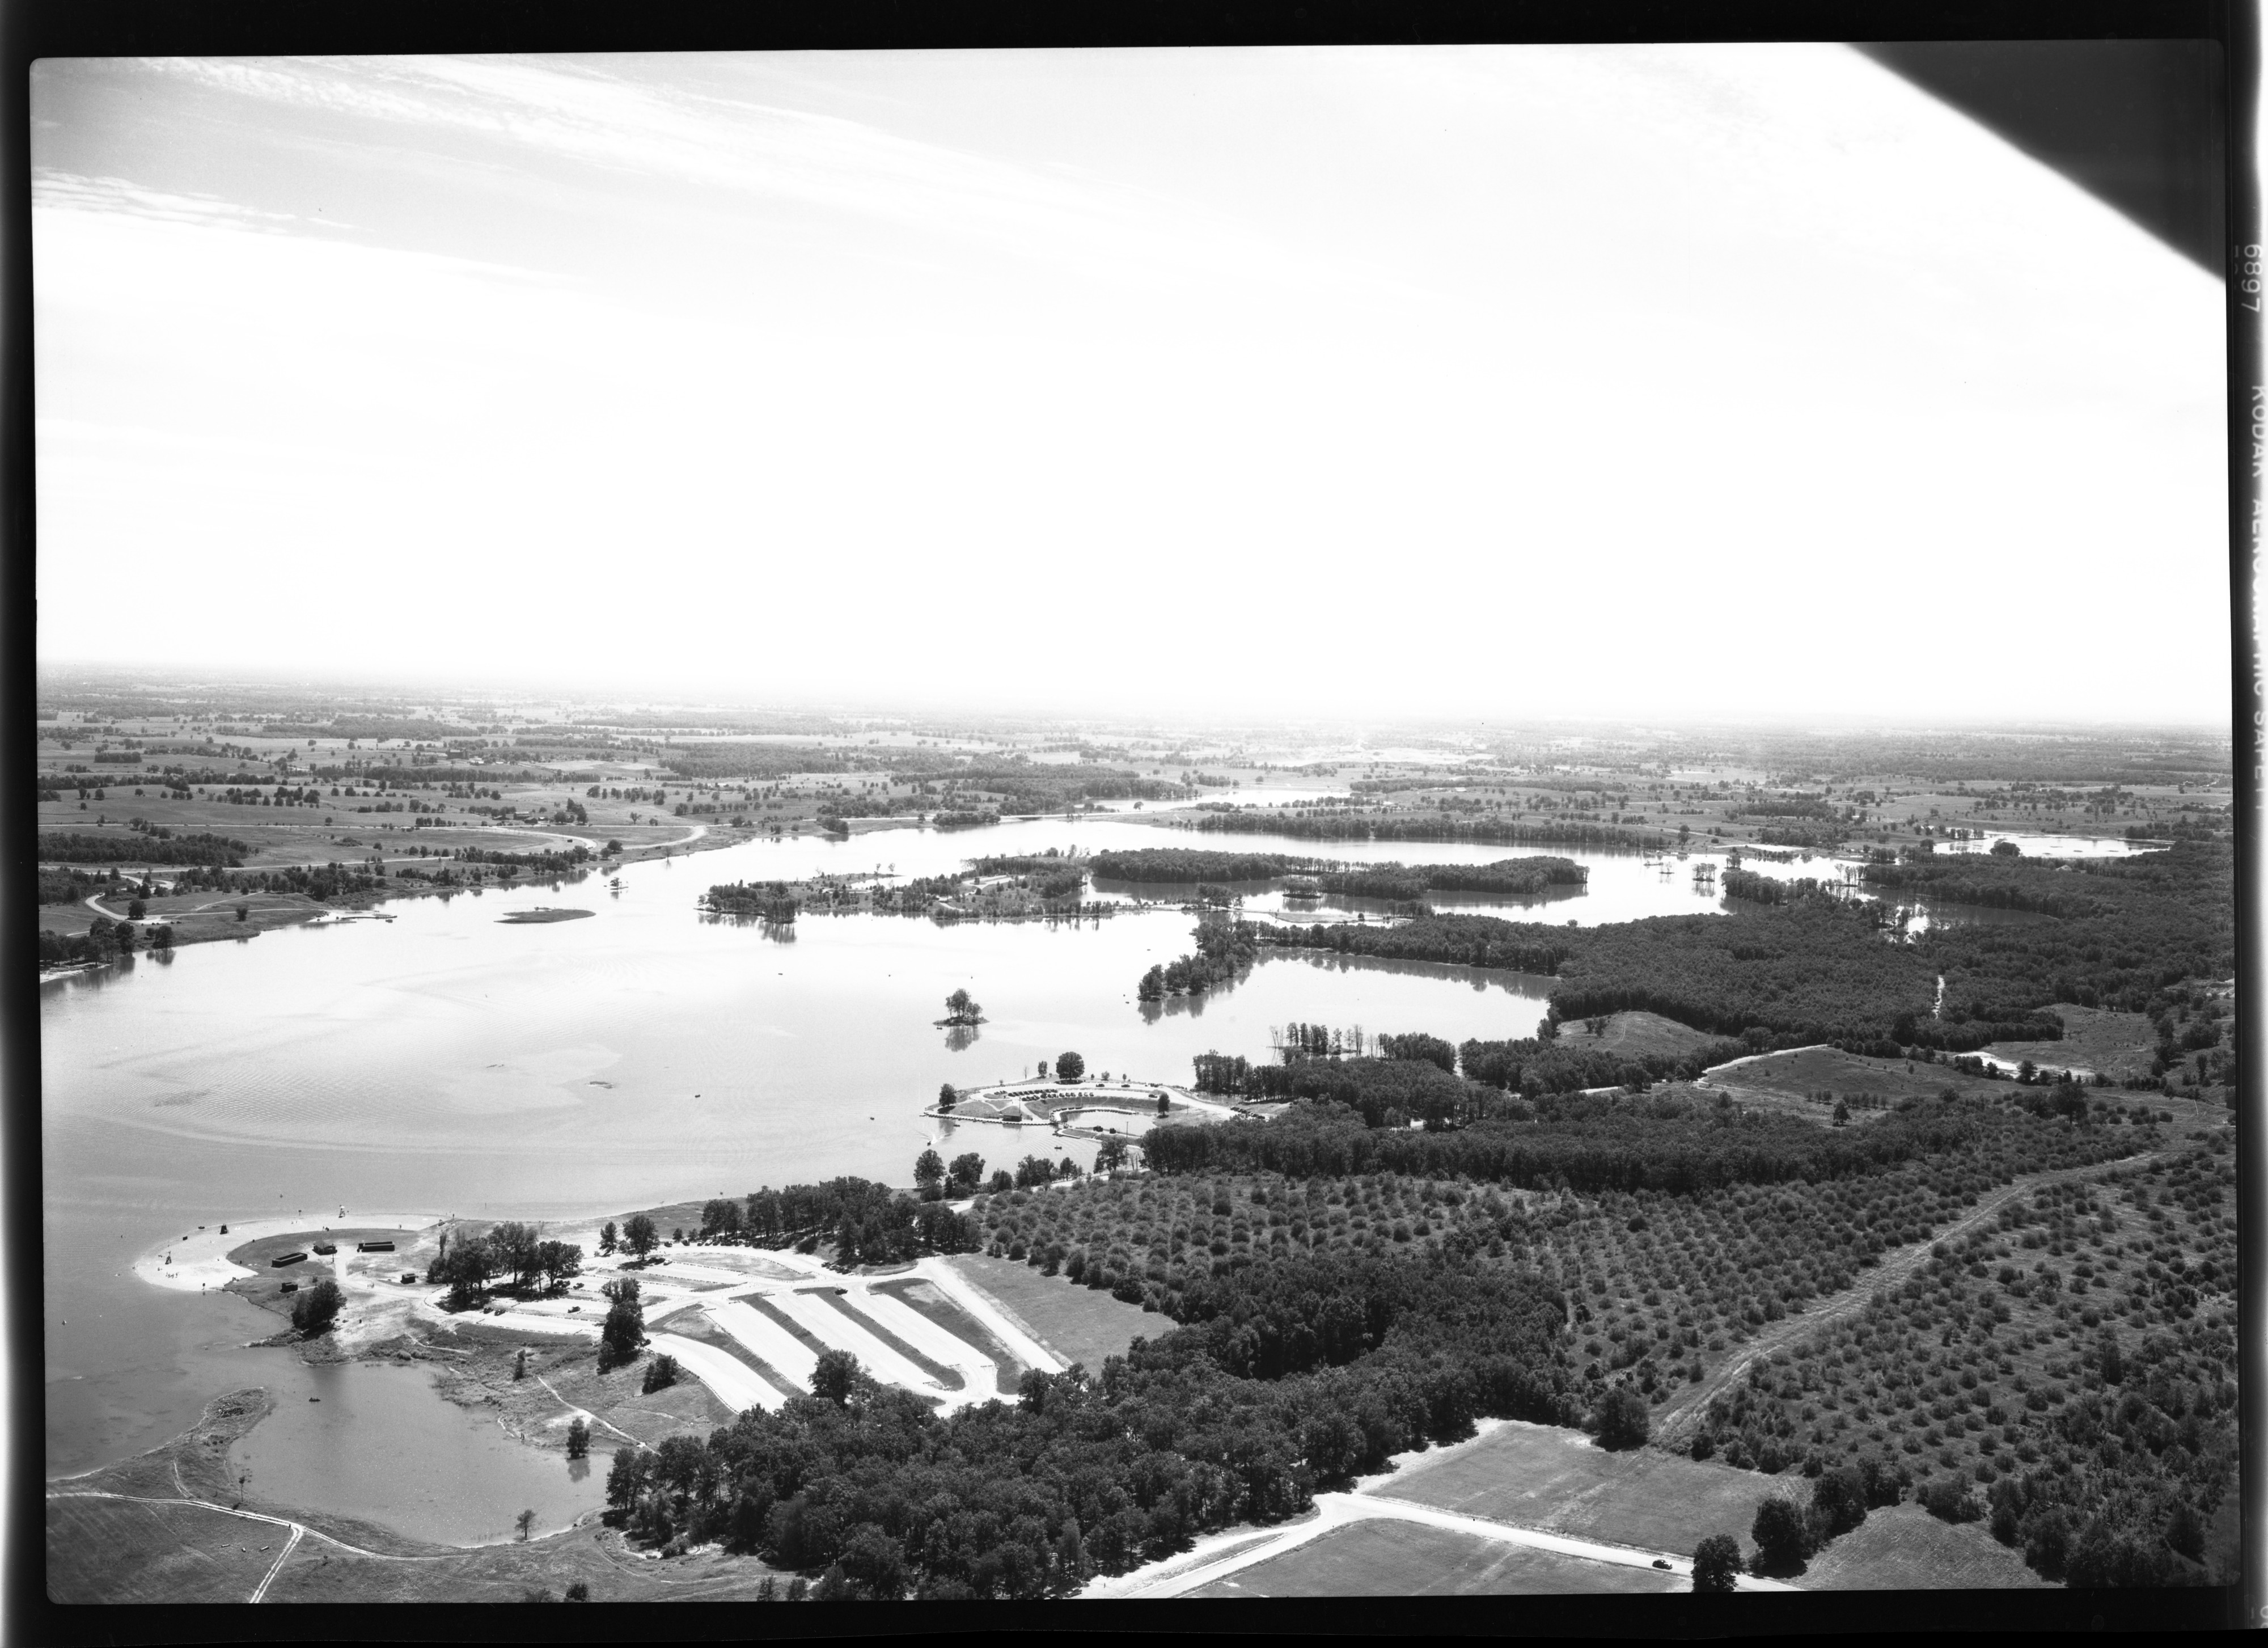 Kent Lake, from air, July 30, 1949 image